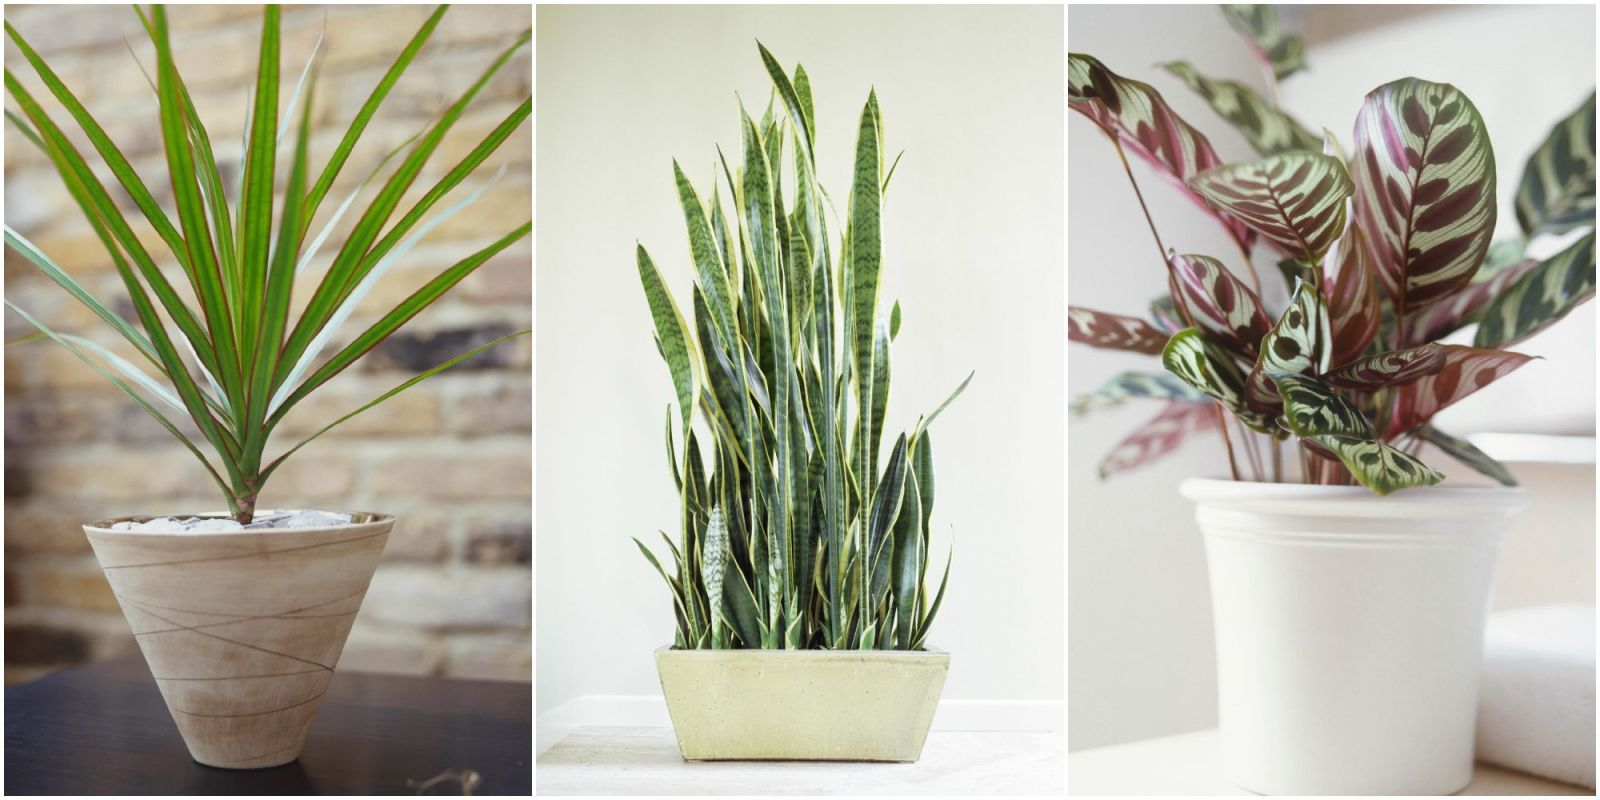 Tall Flowering House Plants low light houseplants - plants that don't require much light